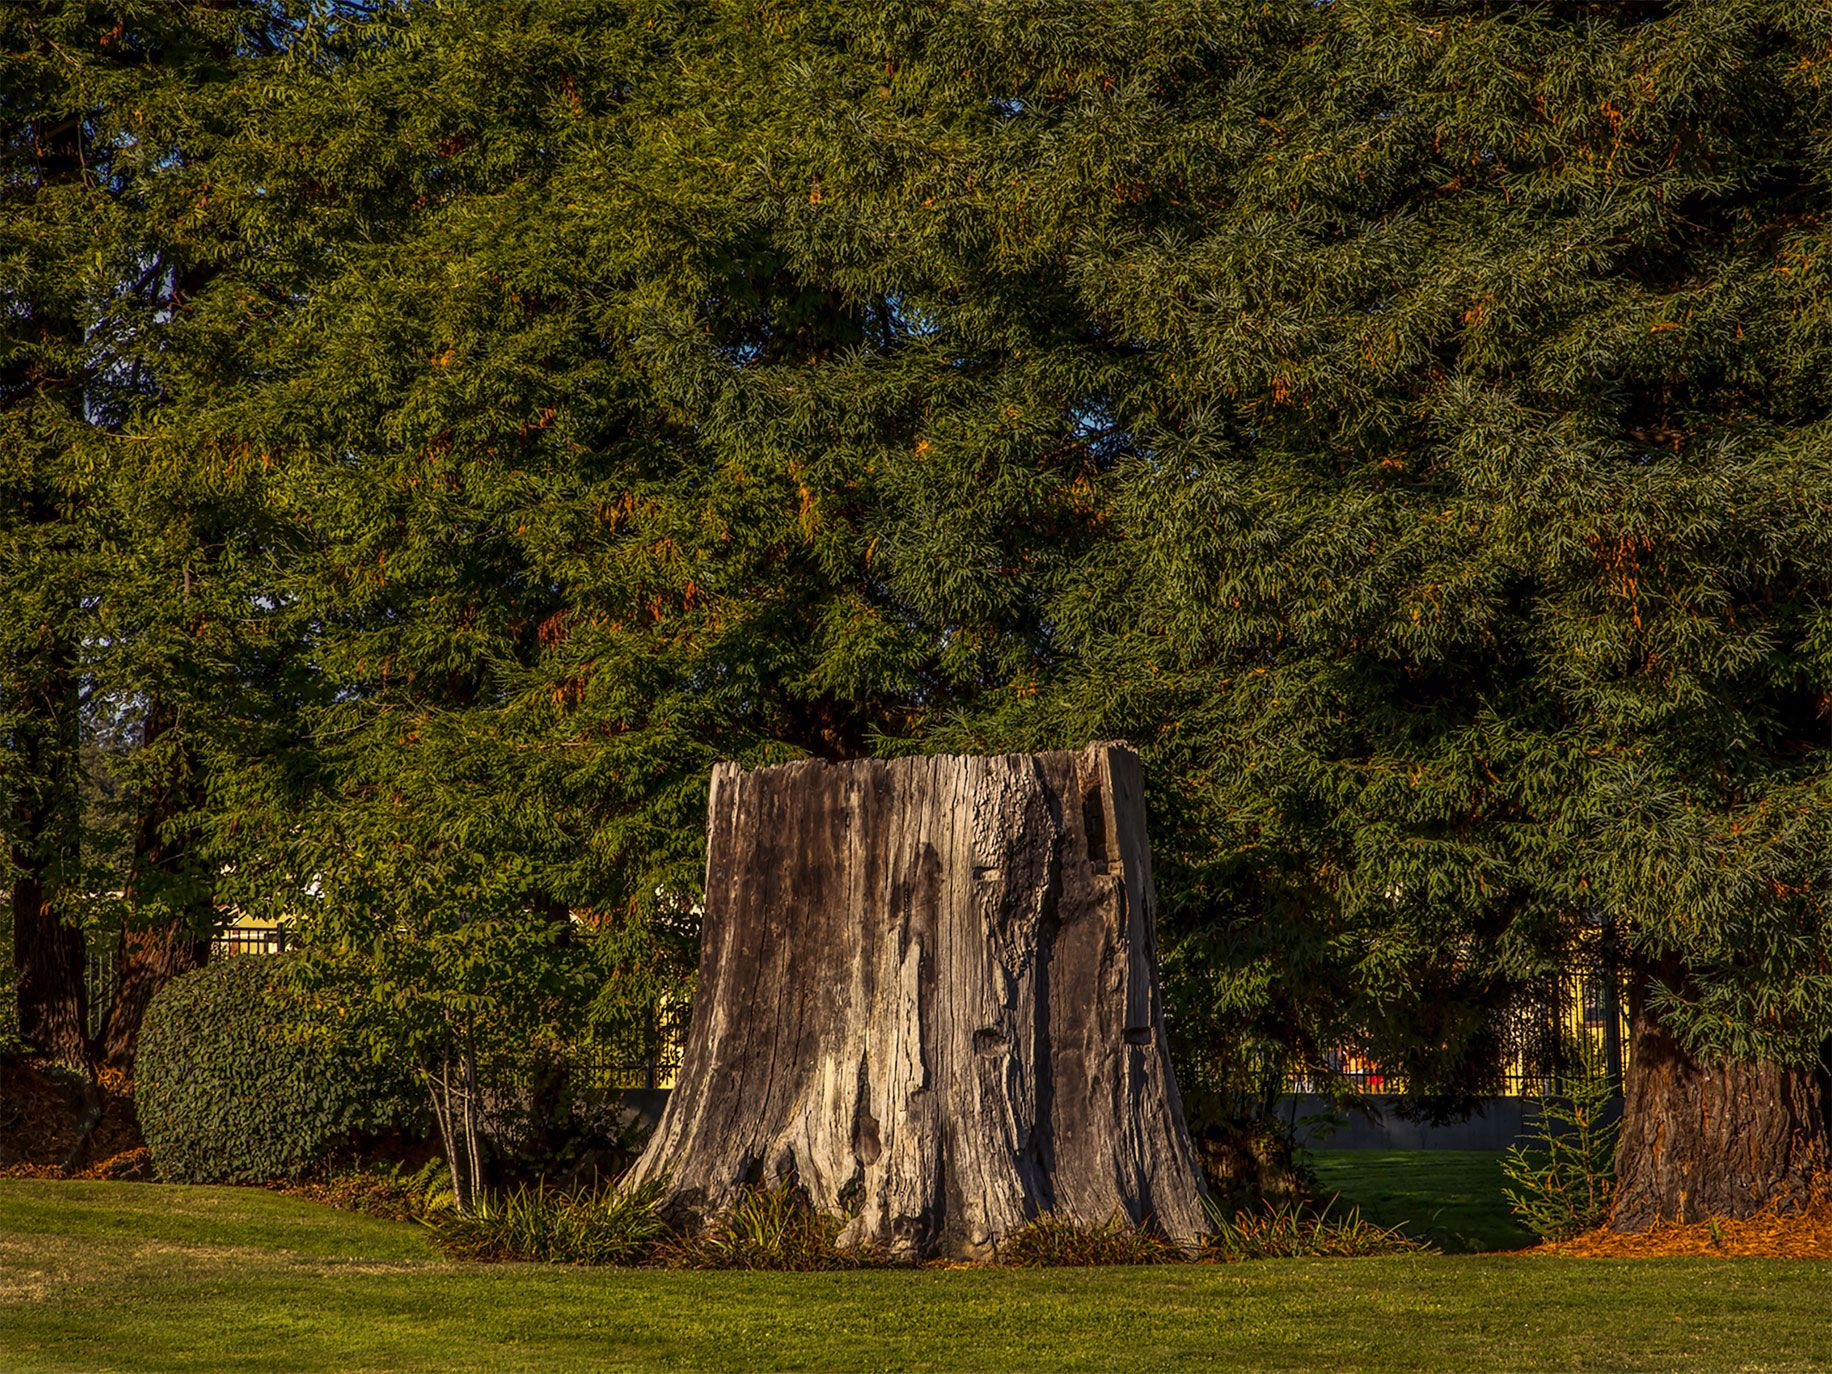 The stump of a redwood tree at Humboldt State University in Arcata.